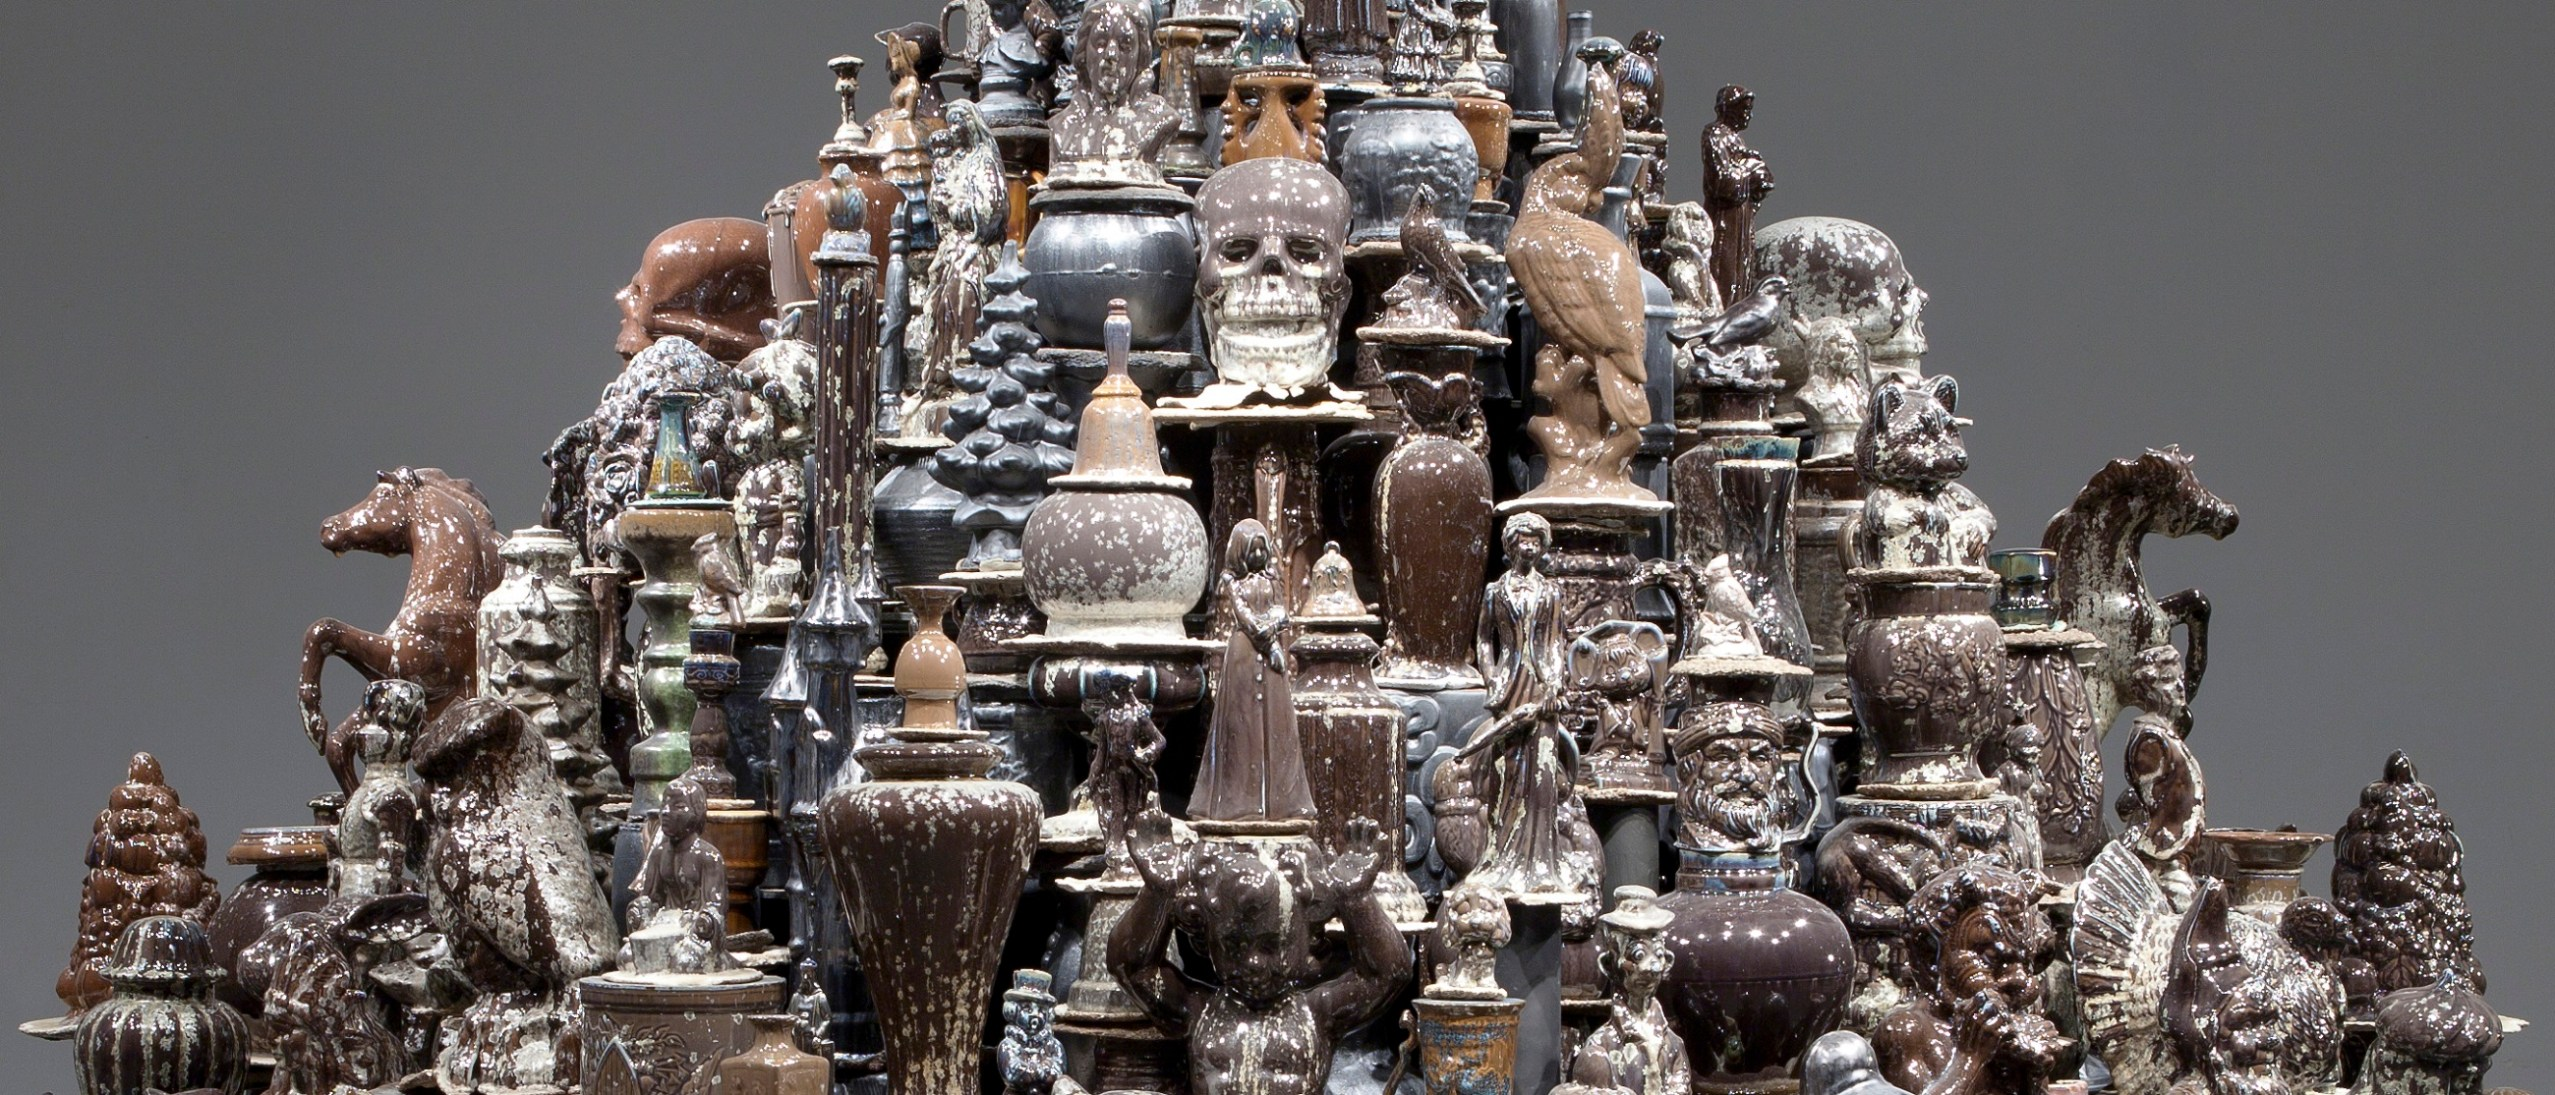 Detail, Walter McConnell, A Theory of Everything: Dark Stupa, 2014. Porcelain, 264.2 × 284.5 cm. Photo courtesy Cross MacKenzie Gallery, Washington, DC. image